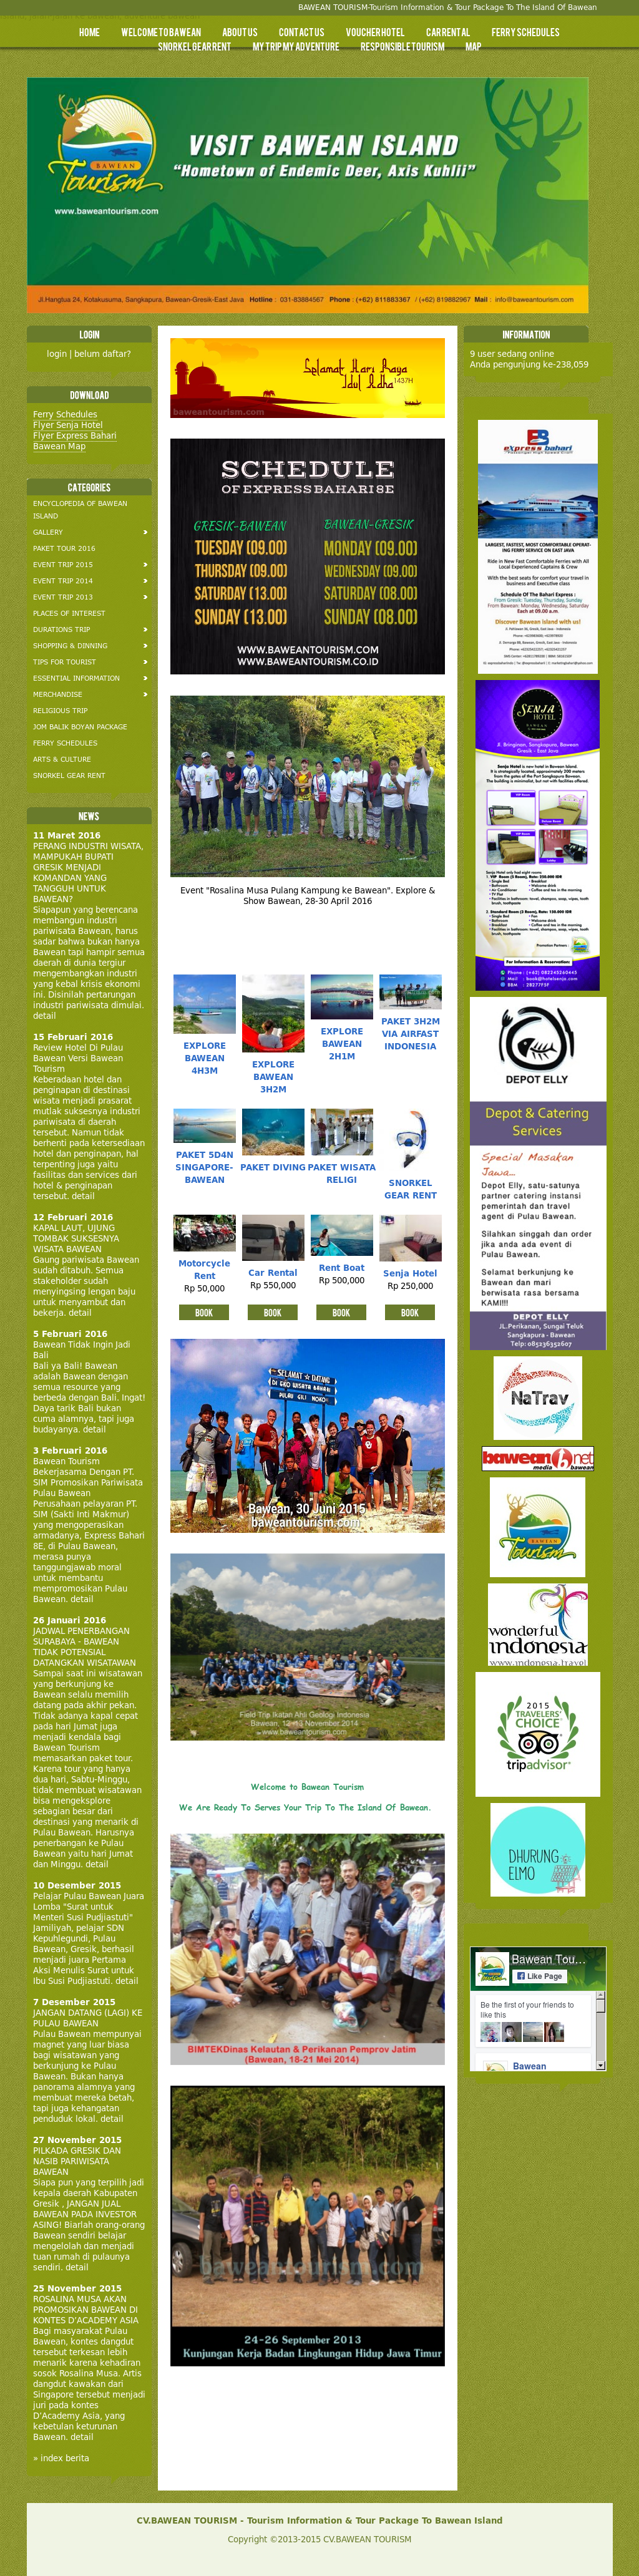 Bawean Tourism Competitors Revenue And Employees Owler Company Kapal Otok Surabaya Profile